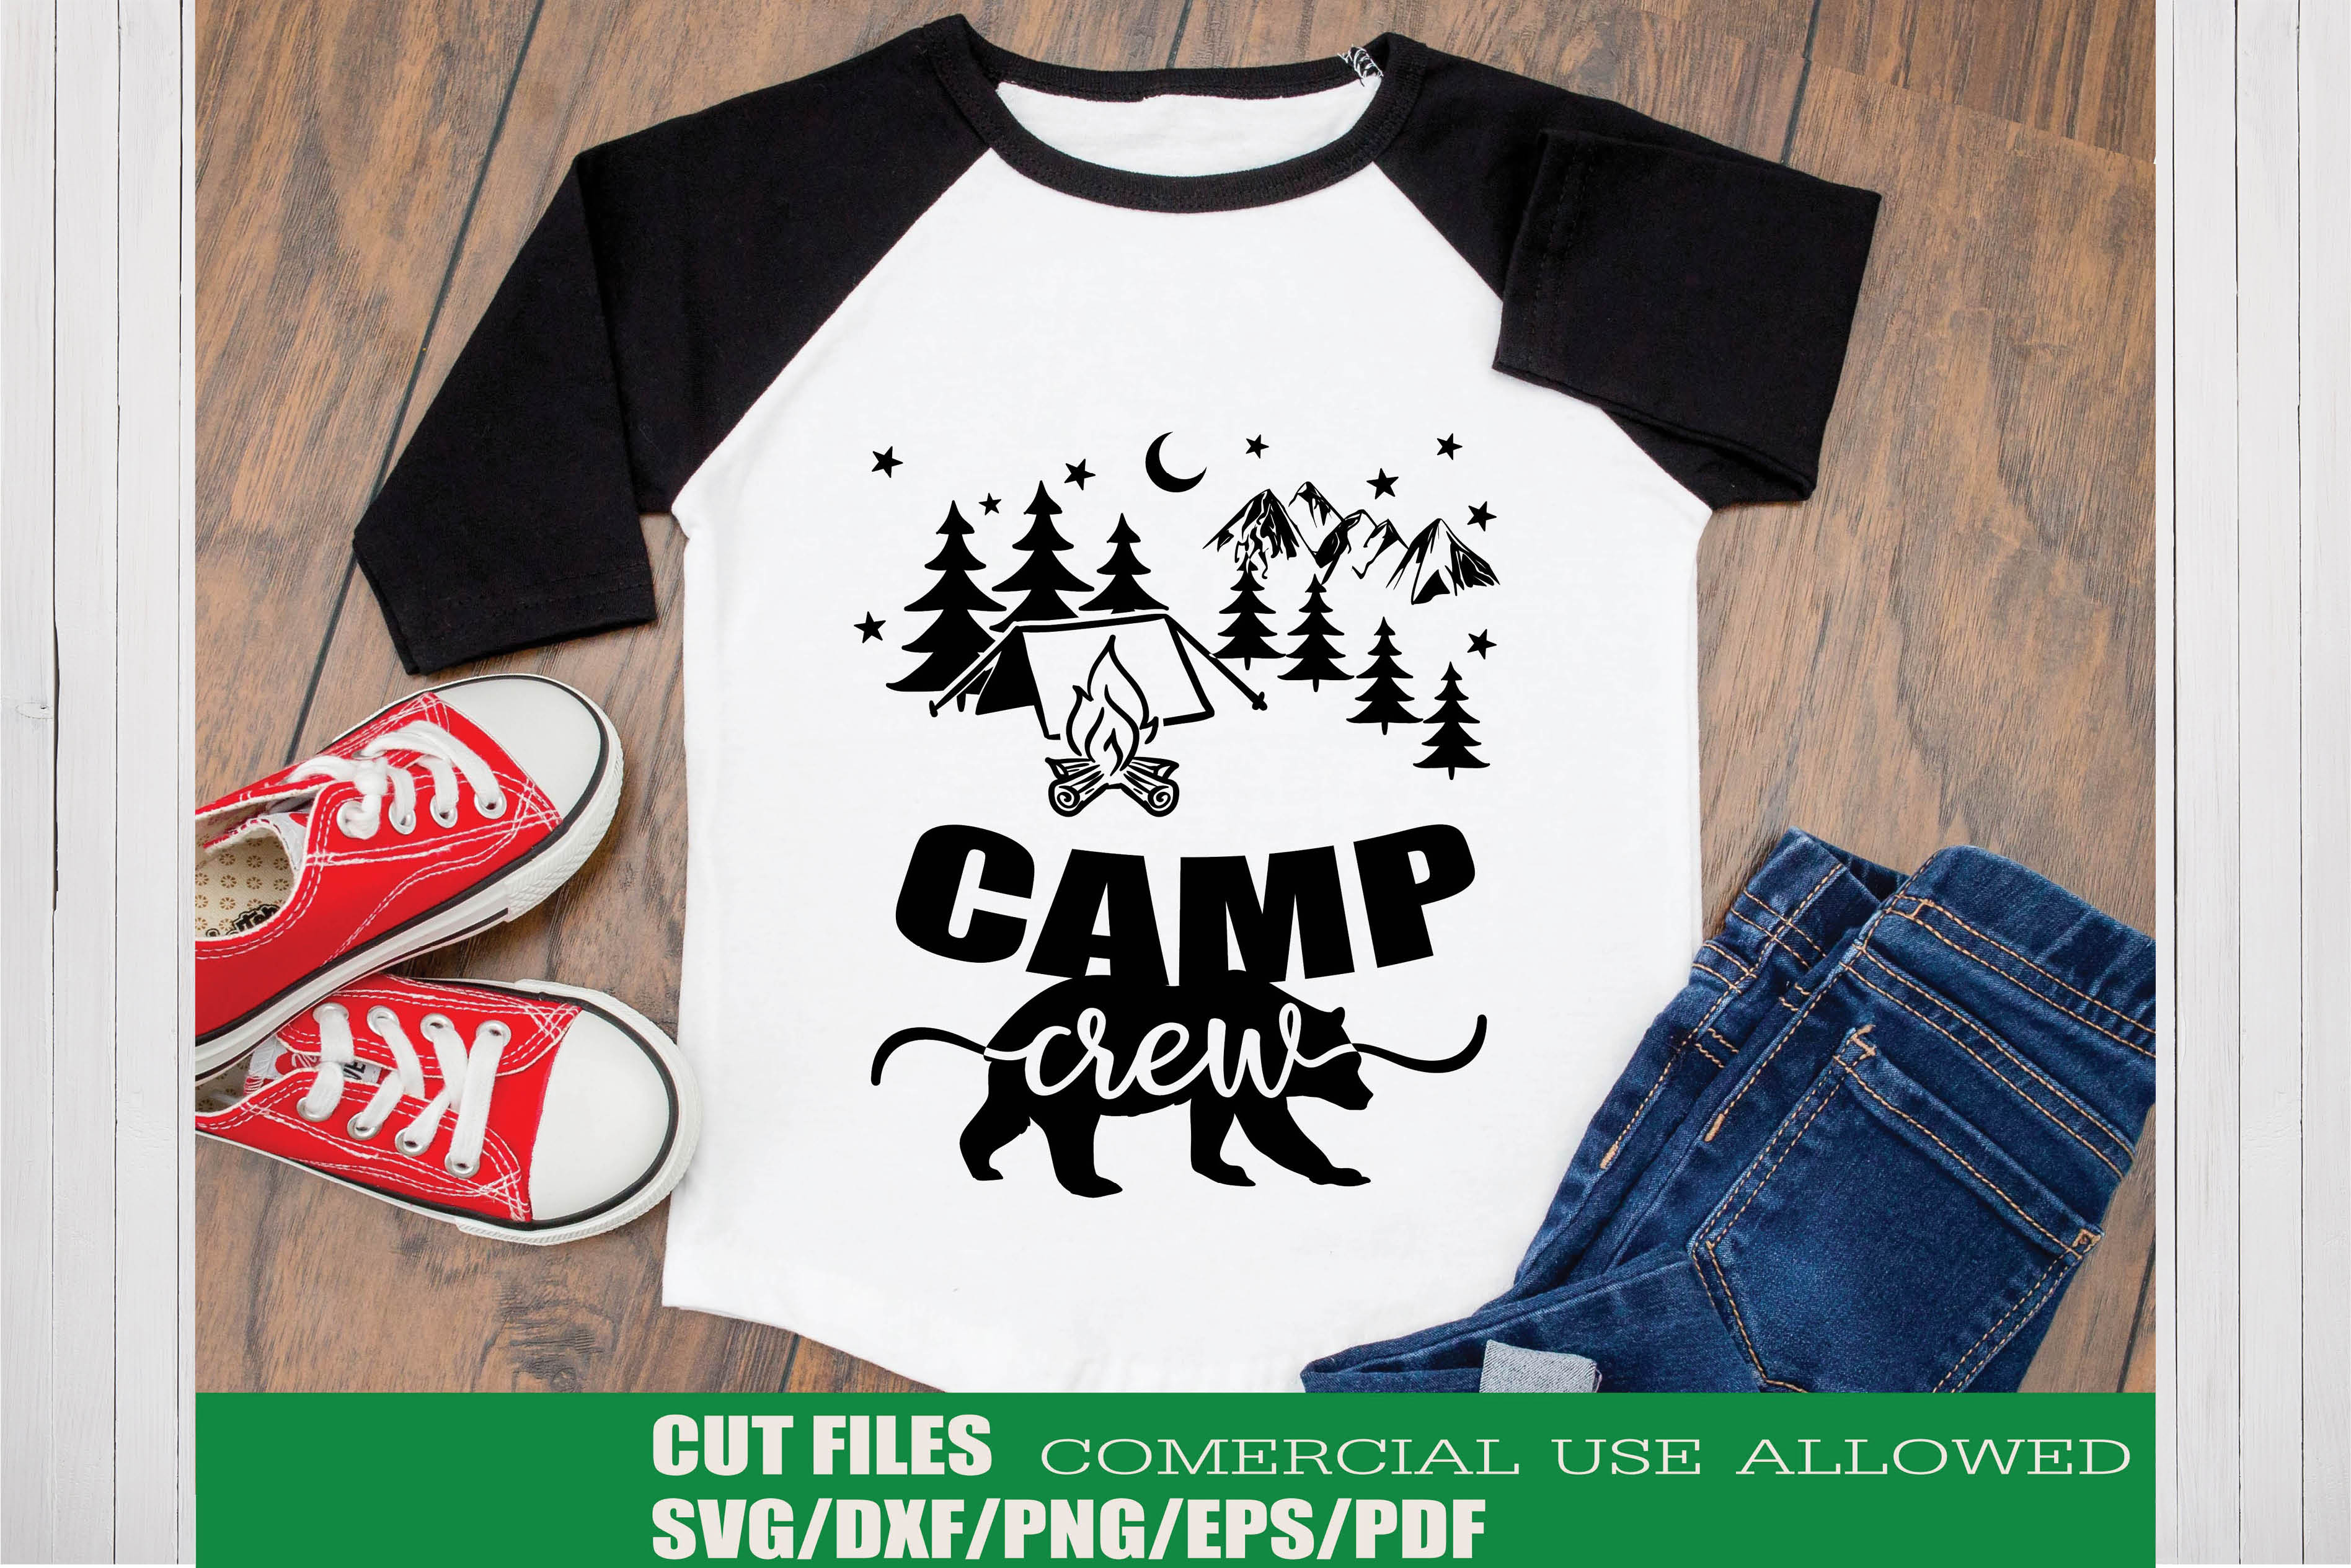 Download Free Camp Crew Graphic By Ktwop Creative Fabrica for Cricut Explore, Silhouette and other cutting machines.